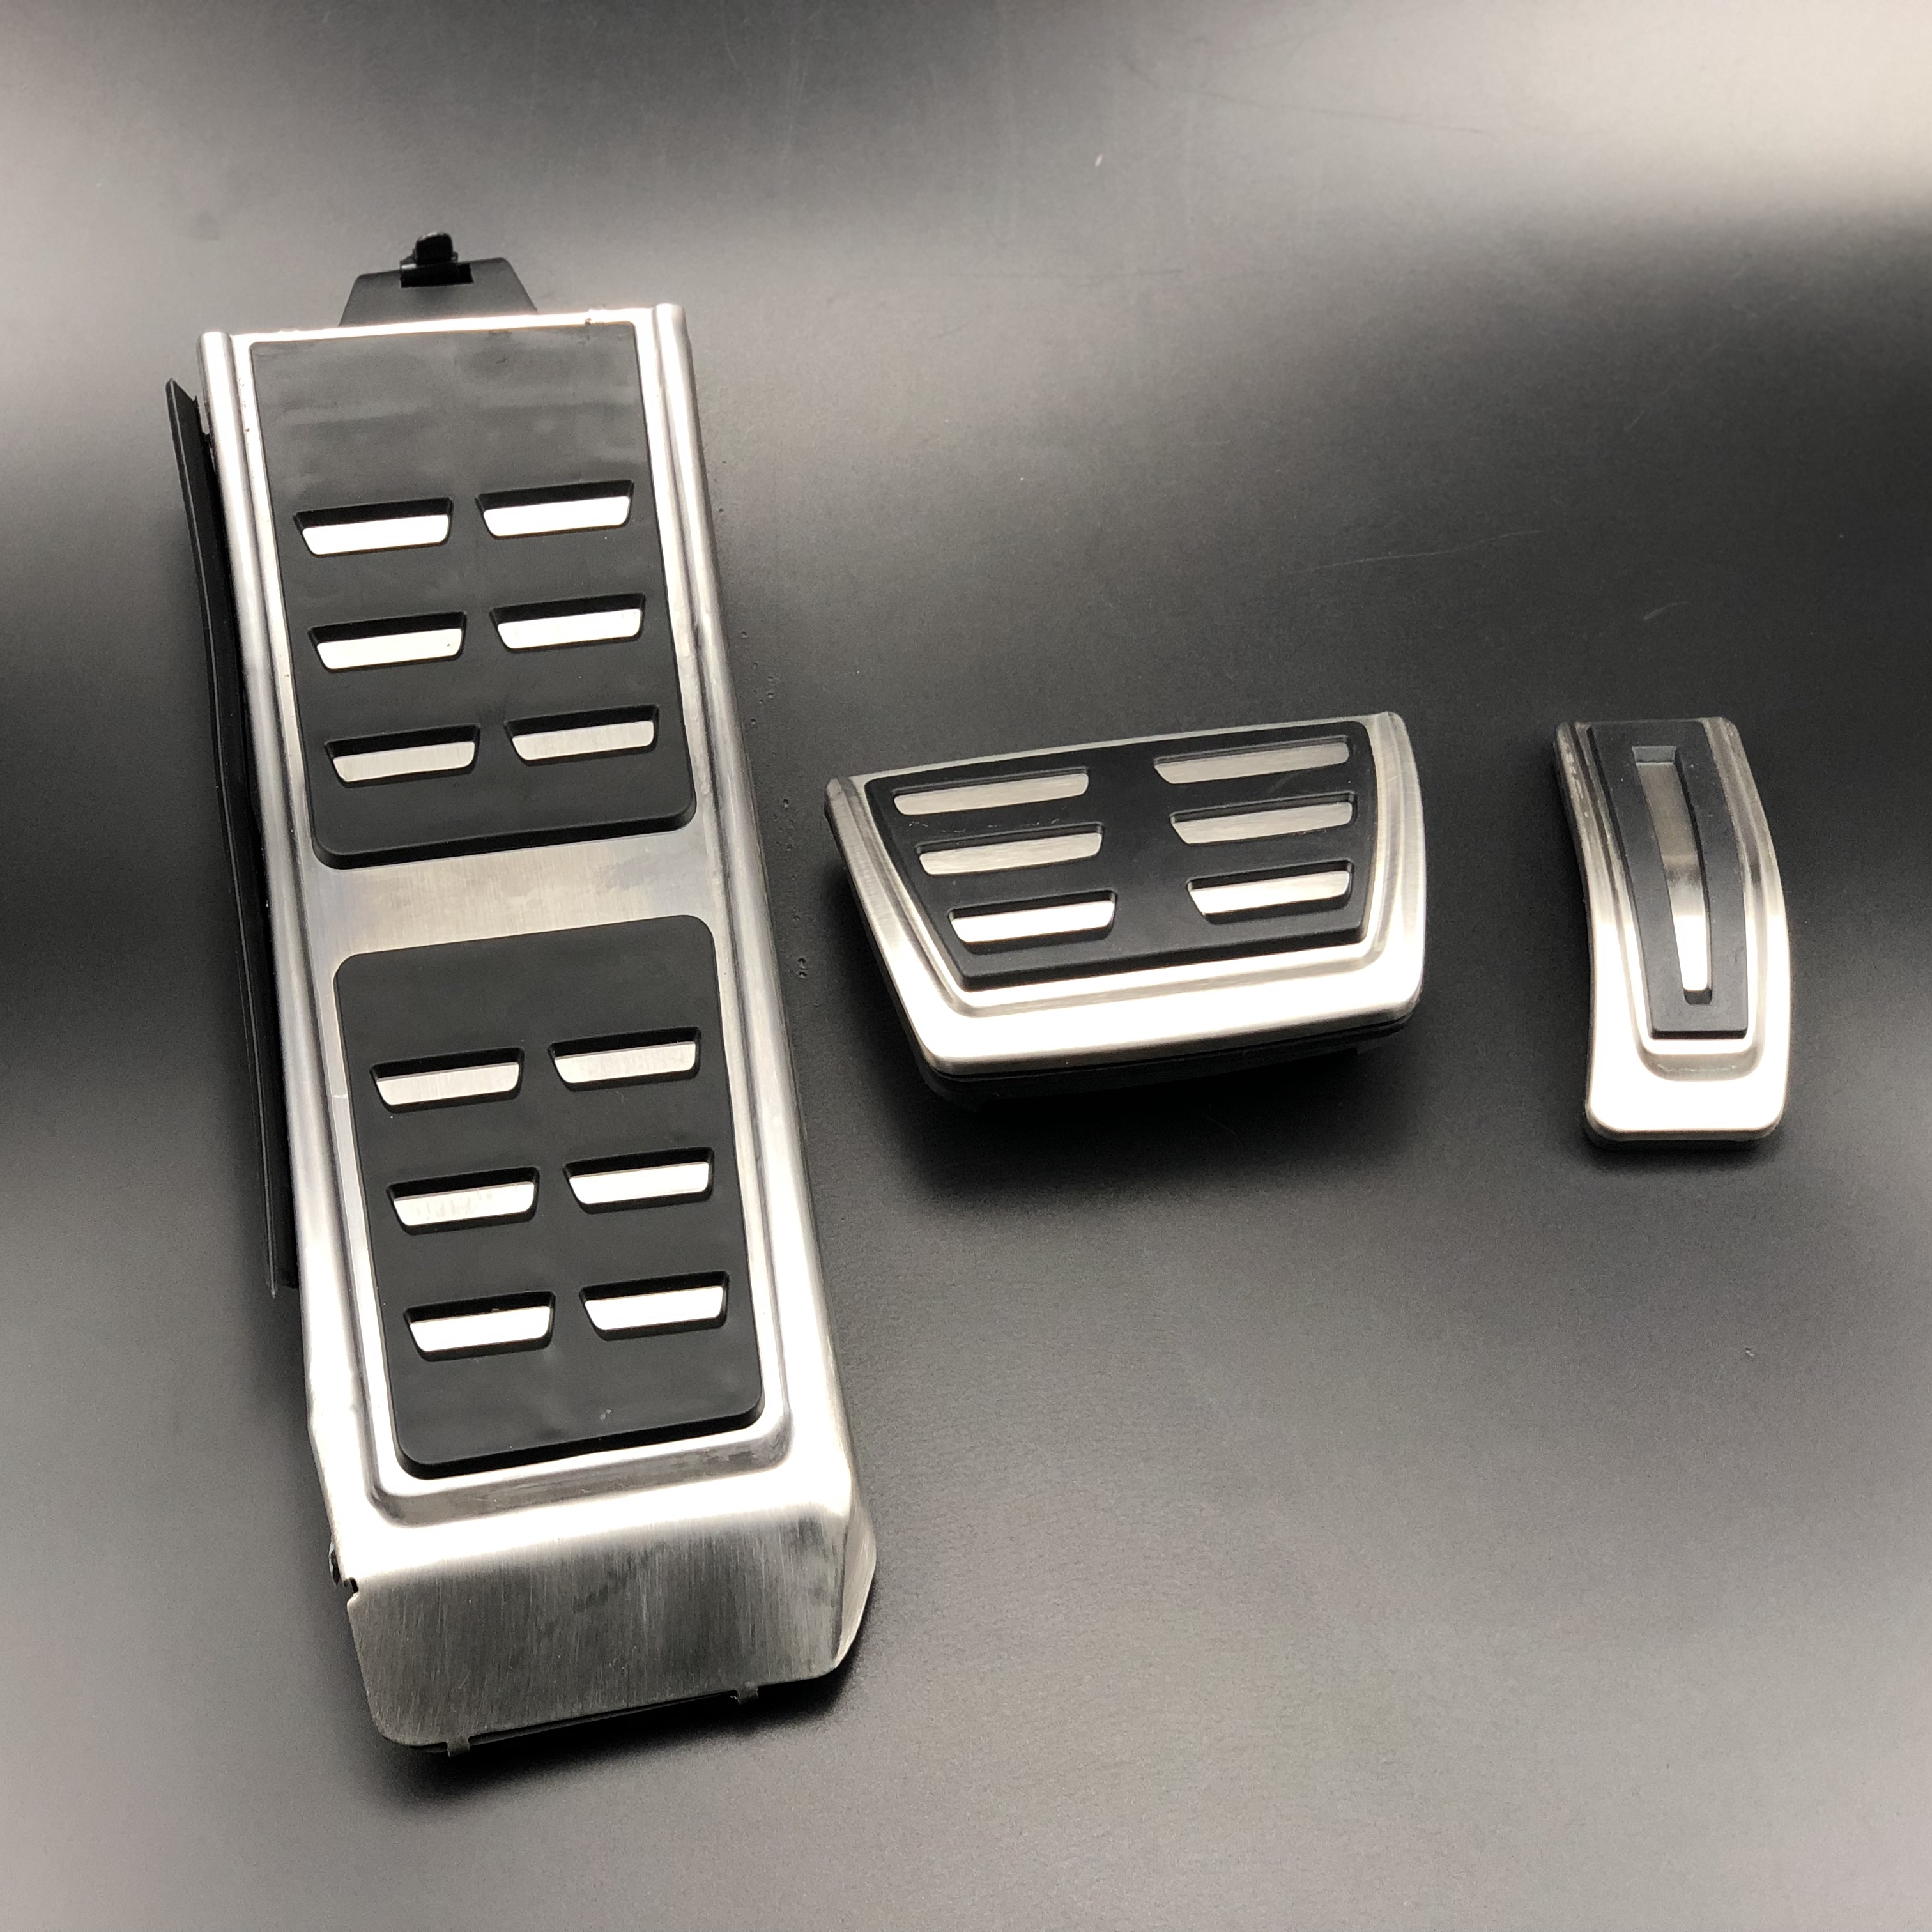 Genuine Pedal Set Audi TT Design with Foot Rests For All Audi A3 8L